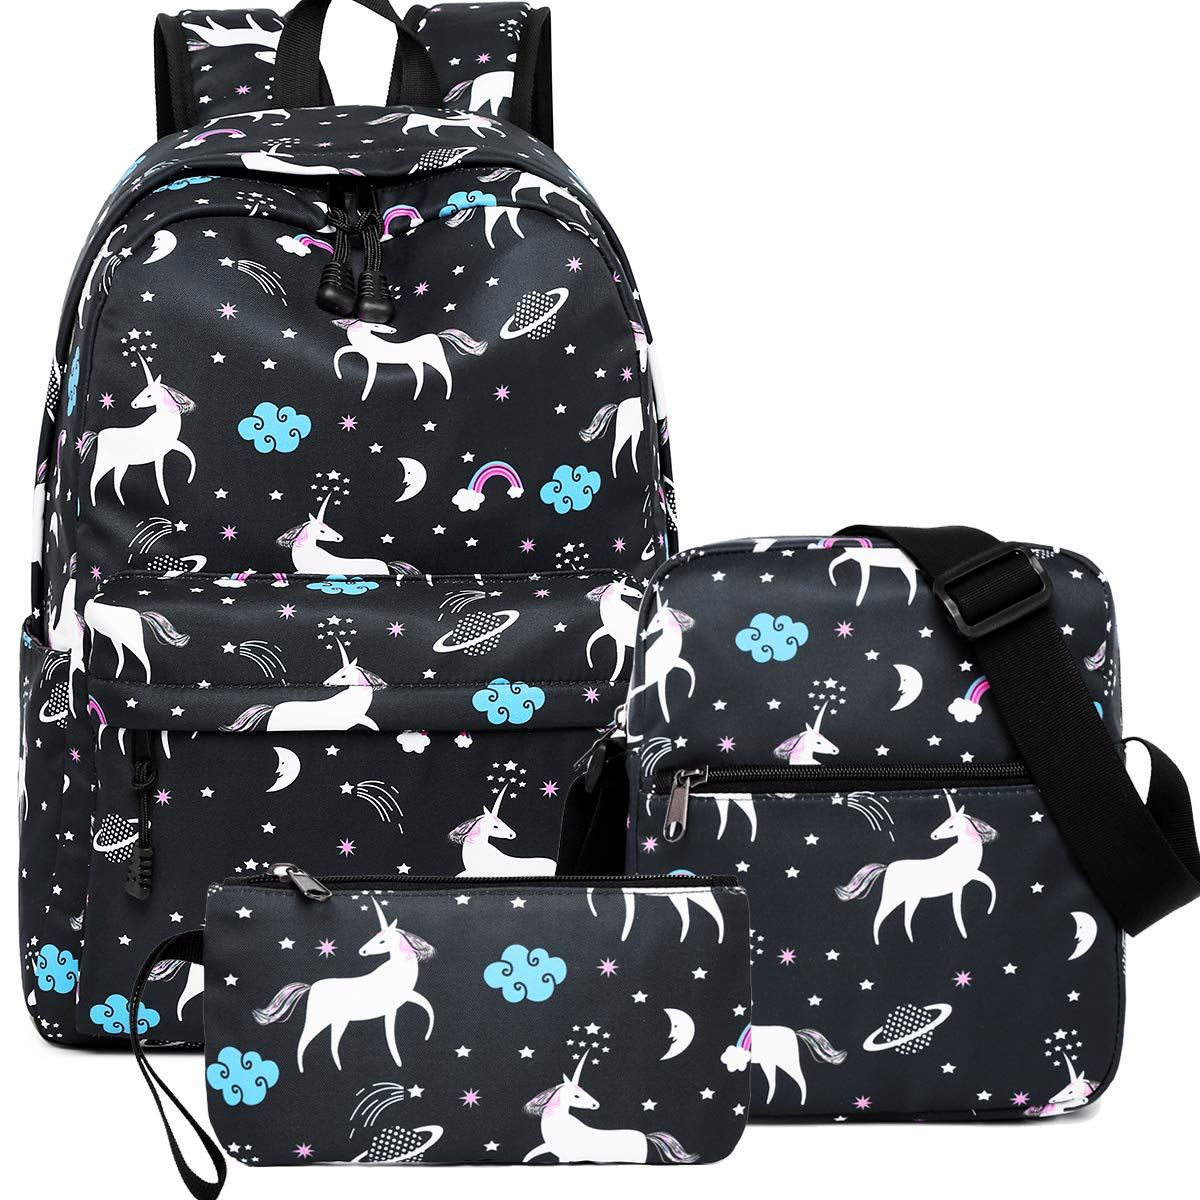 Unicorn Backpack for Teen Girls, Dreampark Student Bookbag for Girls Shoulder Bags and Pen Case Back to School (Black)